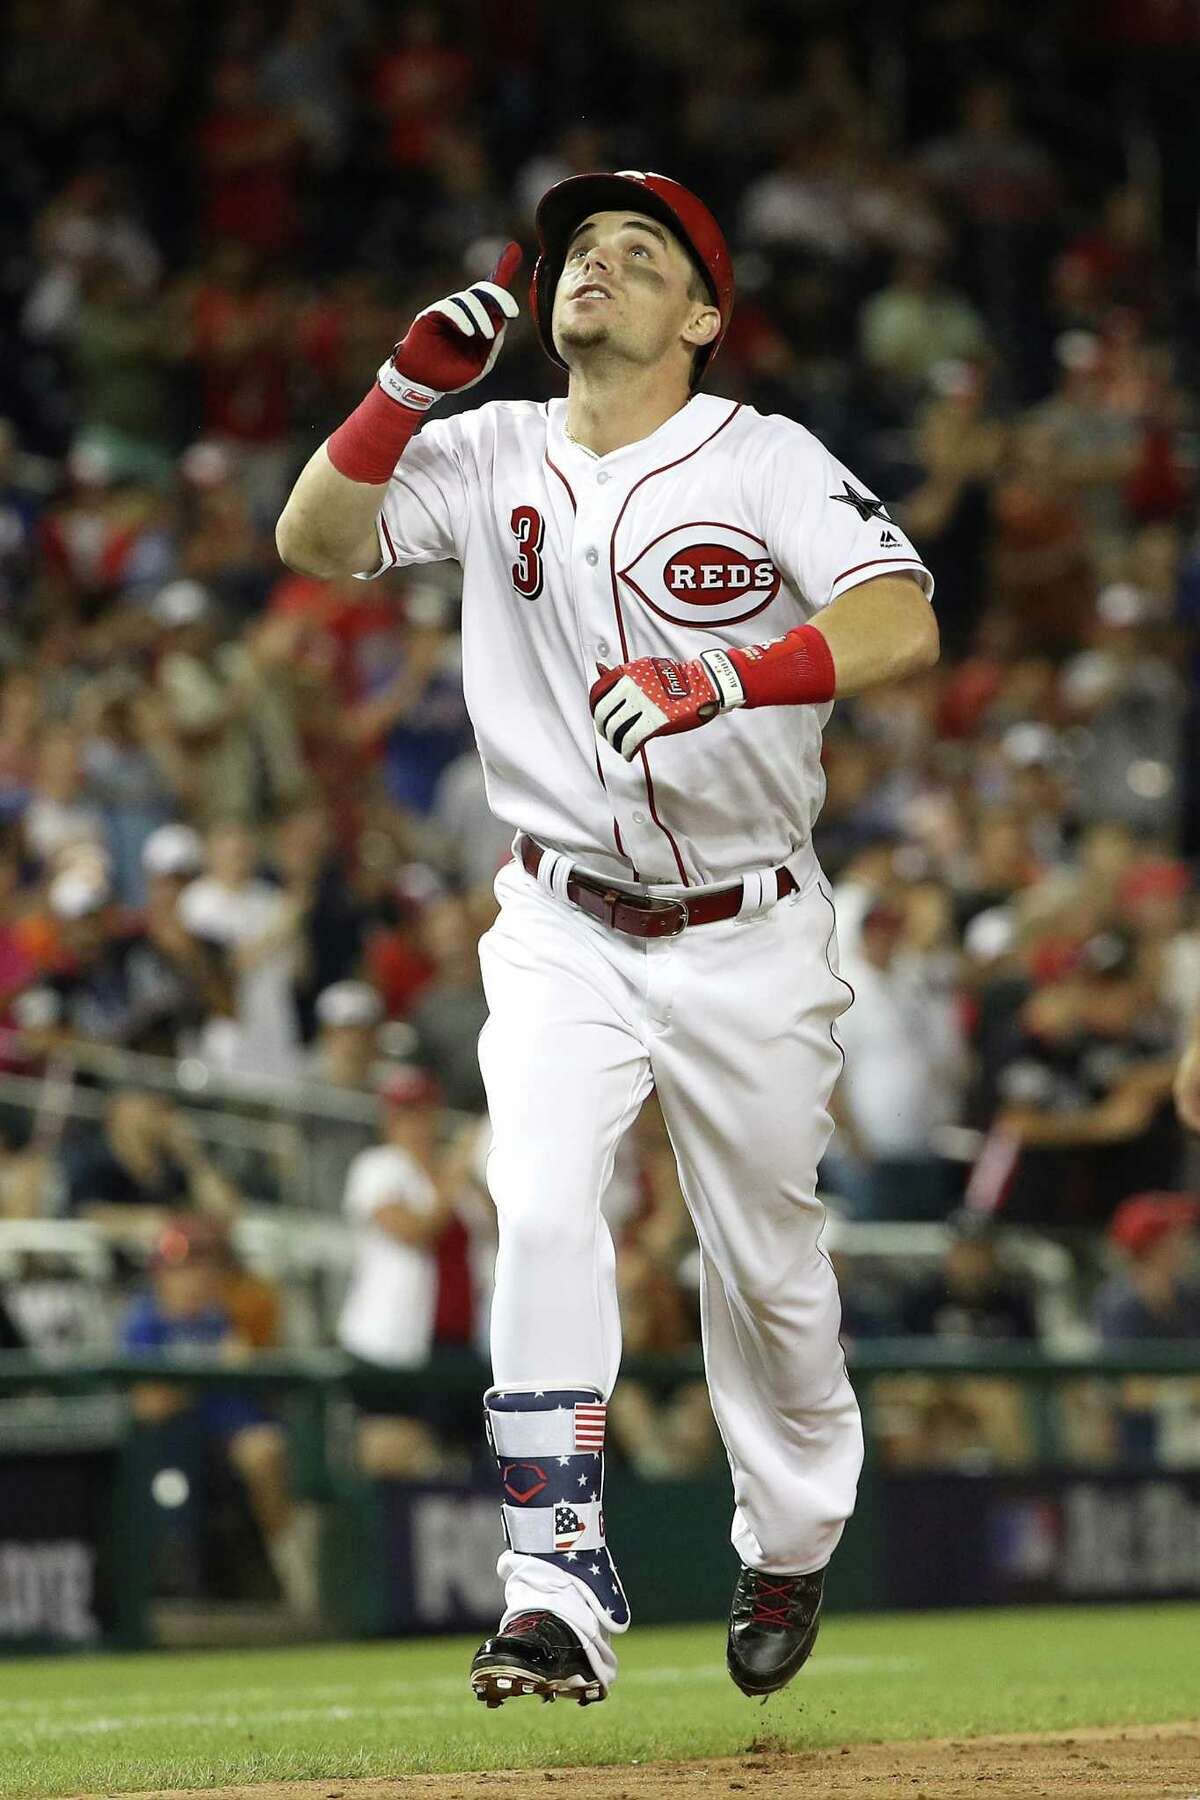 WASHINGTON, DC - JULY 17: Scooter Gennett #3 of the Cincinnati Reds and National League celebrates after a two-run home run in the ninth inning to tie the game against the American League during the 89th MLB All-Star Game, presented by Mastercard at Nationals Park on July 17, 2018 in Washington, DC. (Photo by Patrick Smith/Getty Images)